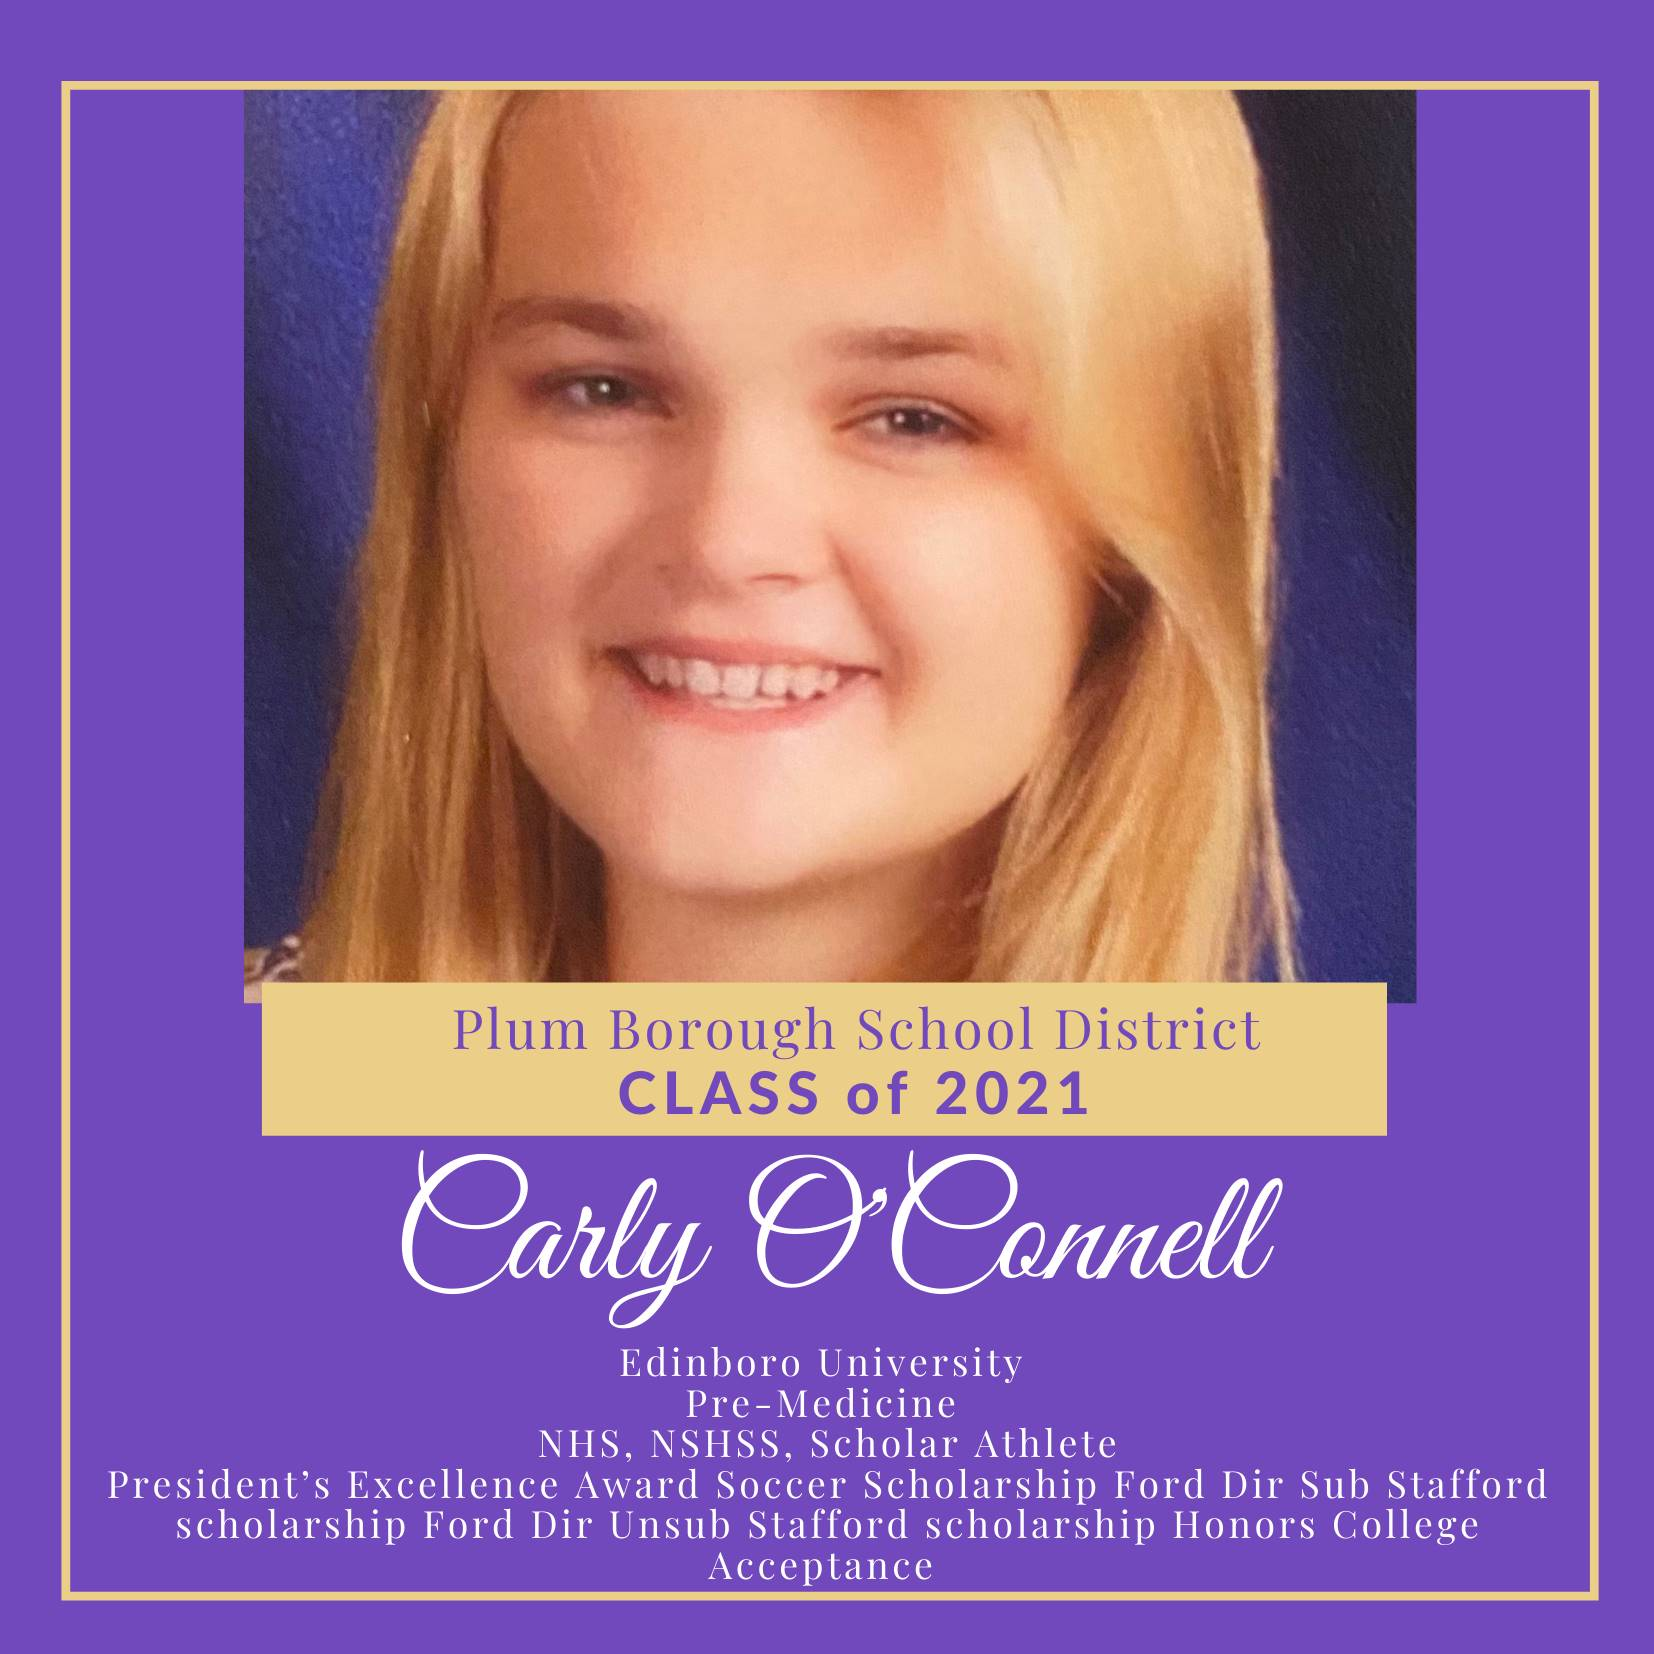 Congratulations to Carly O'Connell, Class of 2021!